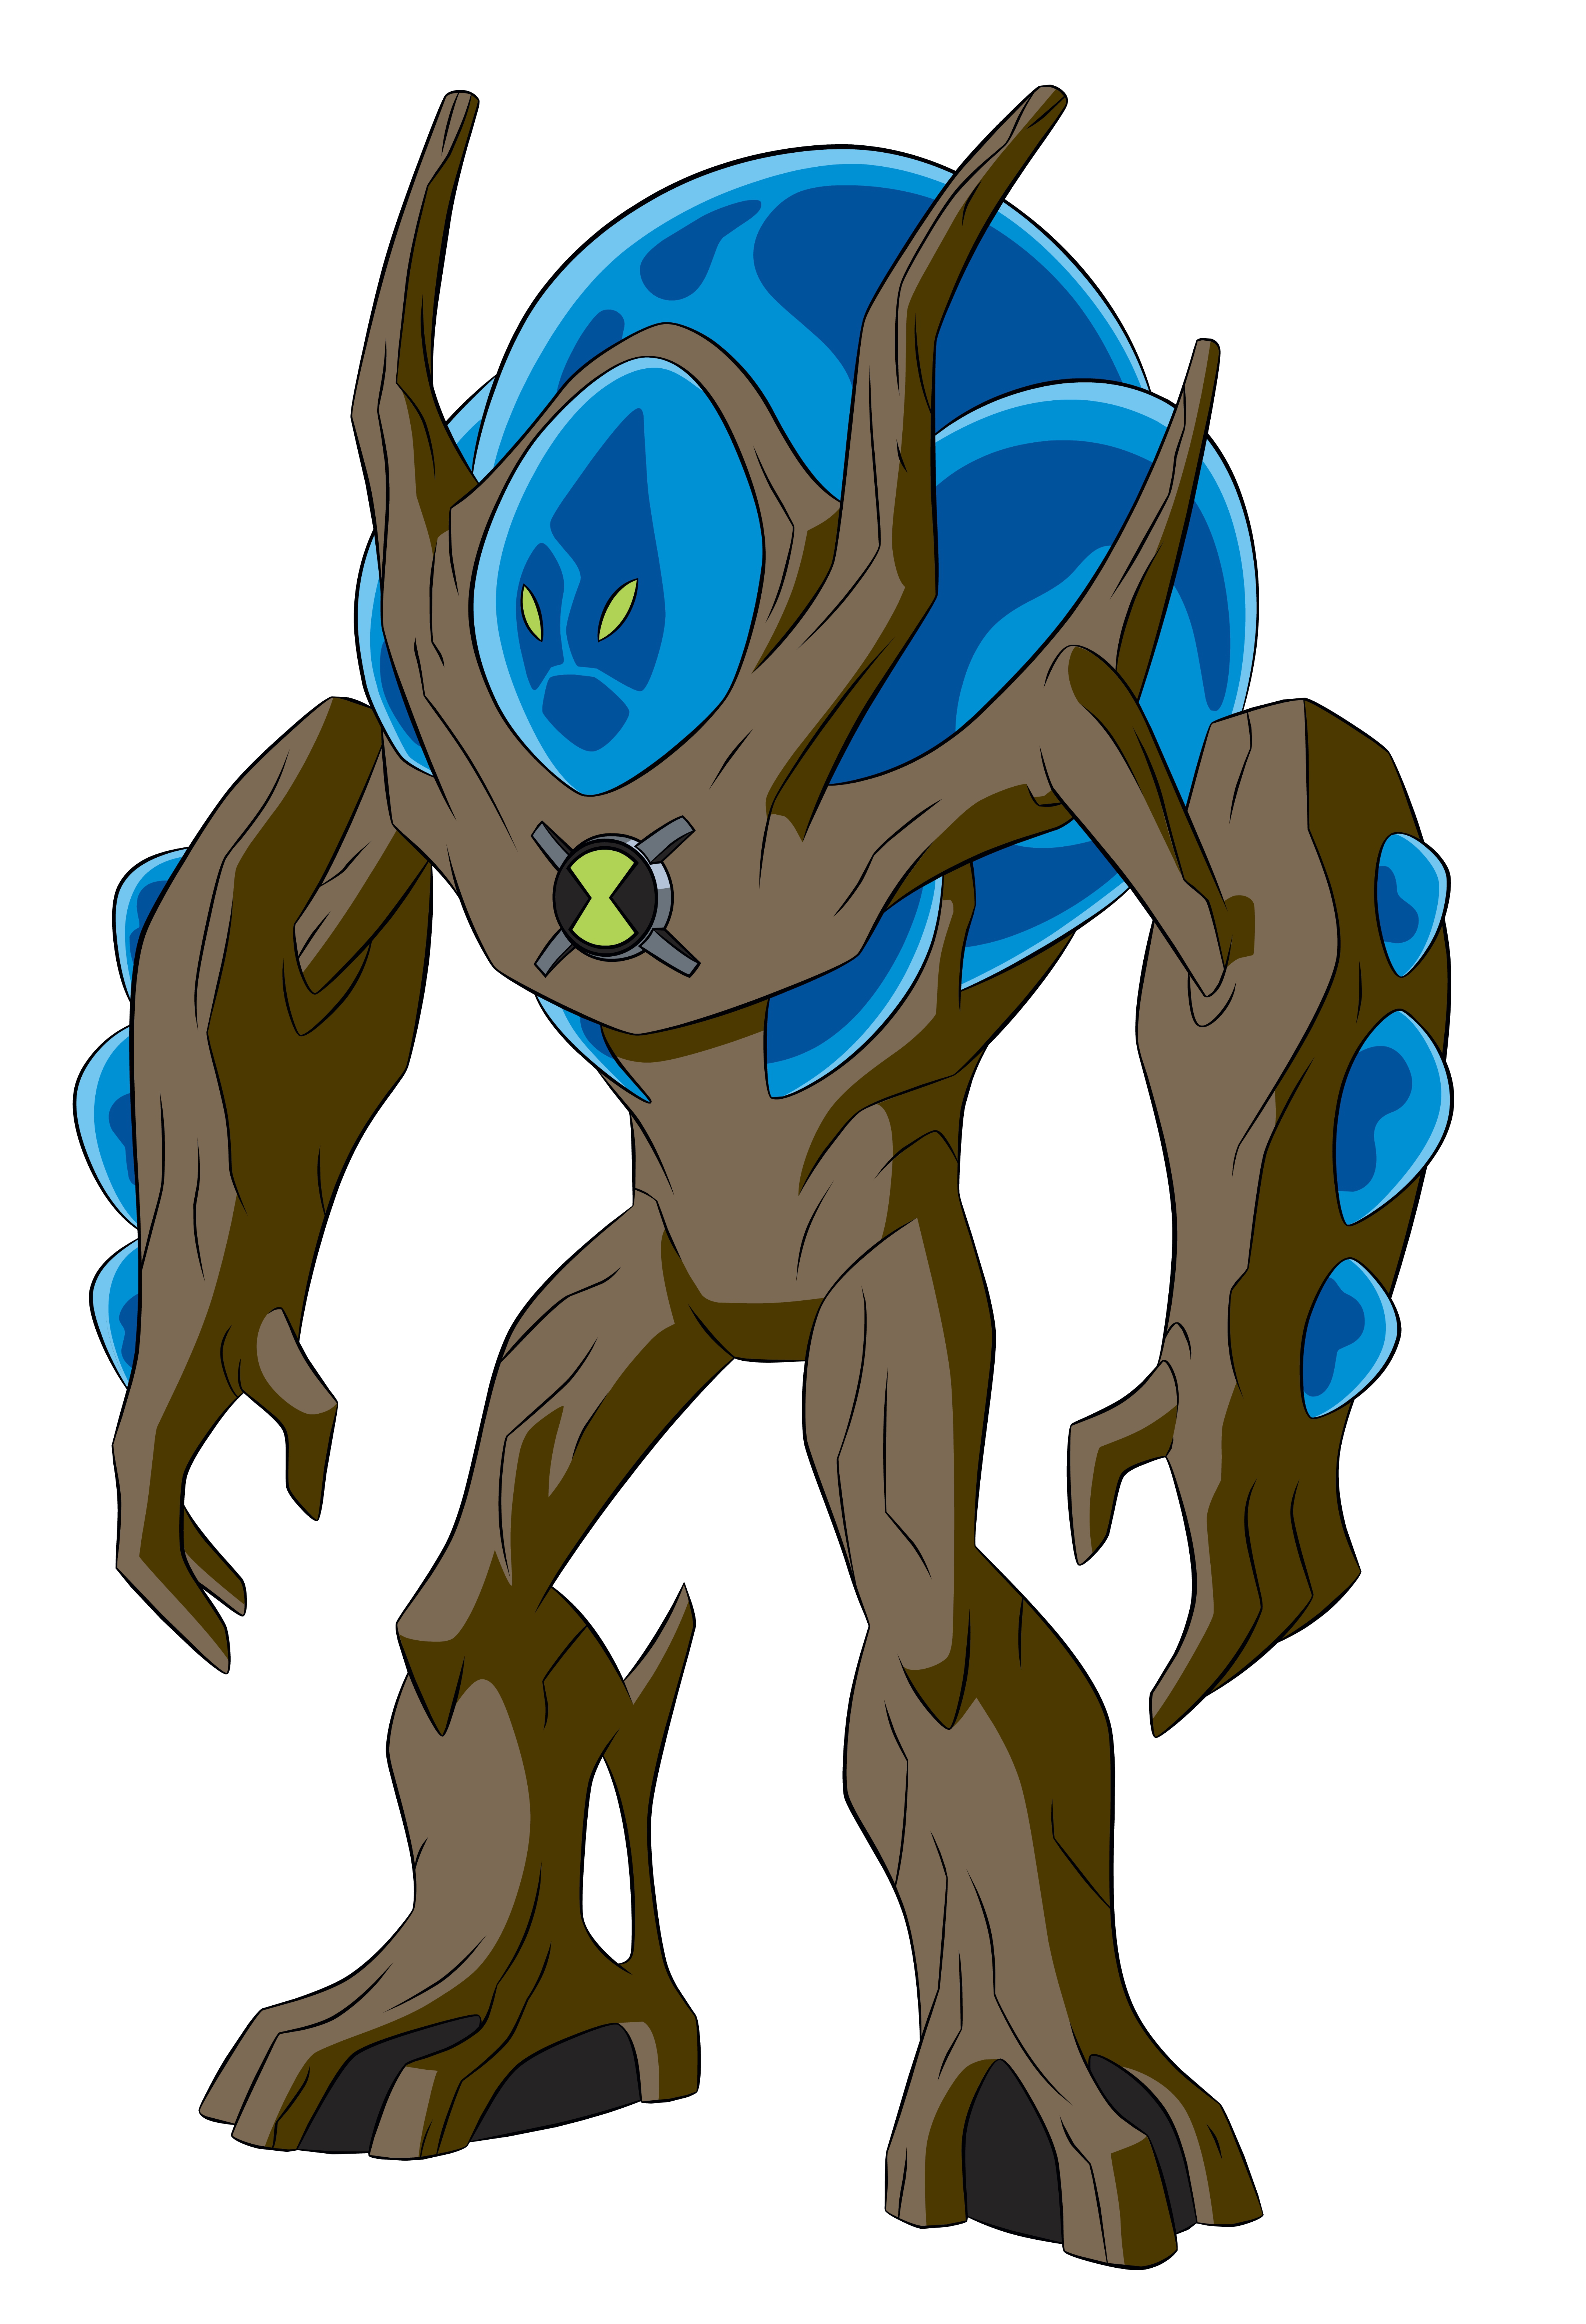 Echo drawing swampfire. Images of ultimate omniverse